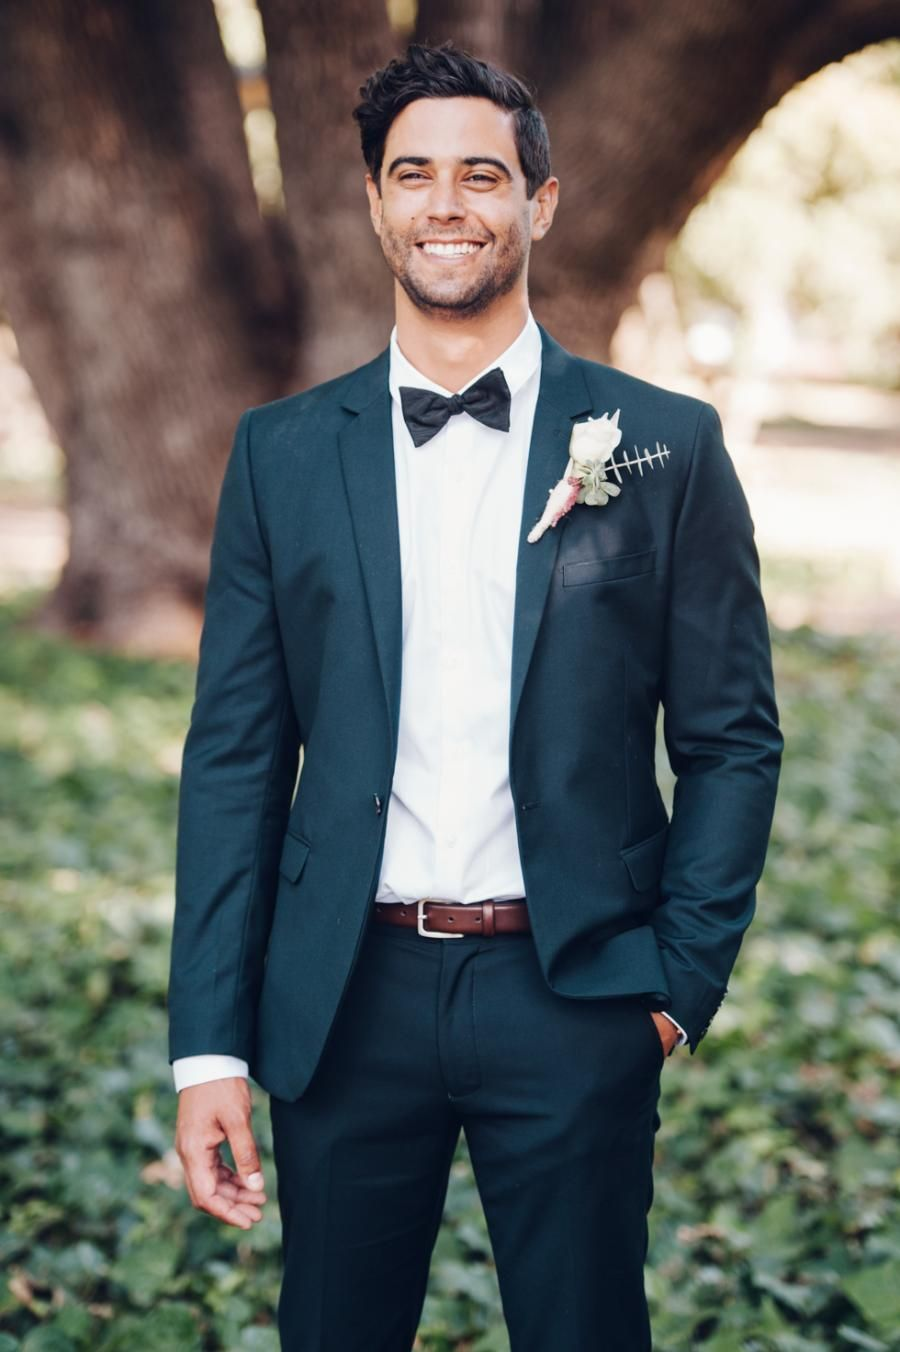 Perfect Groom White Smile Bow Tie Wedding Photo By Love Photography